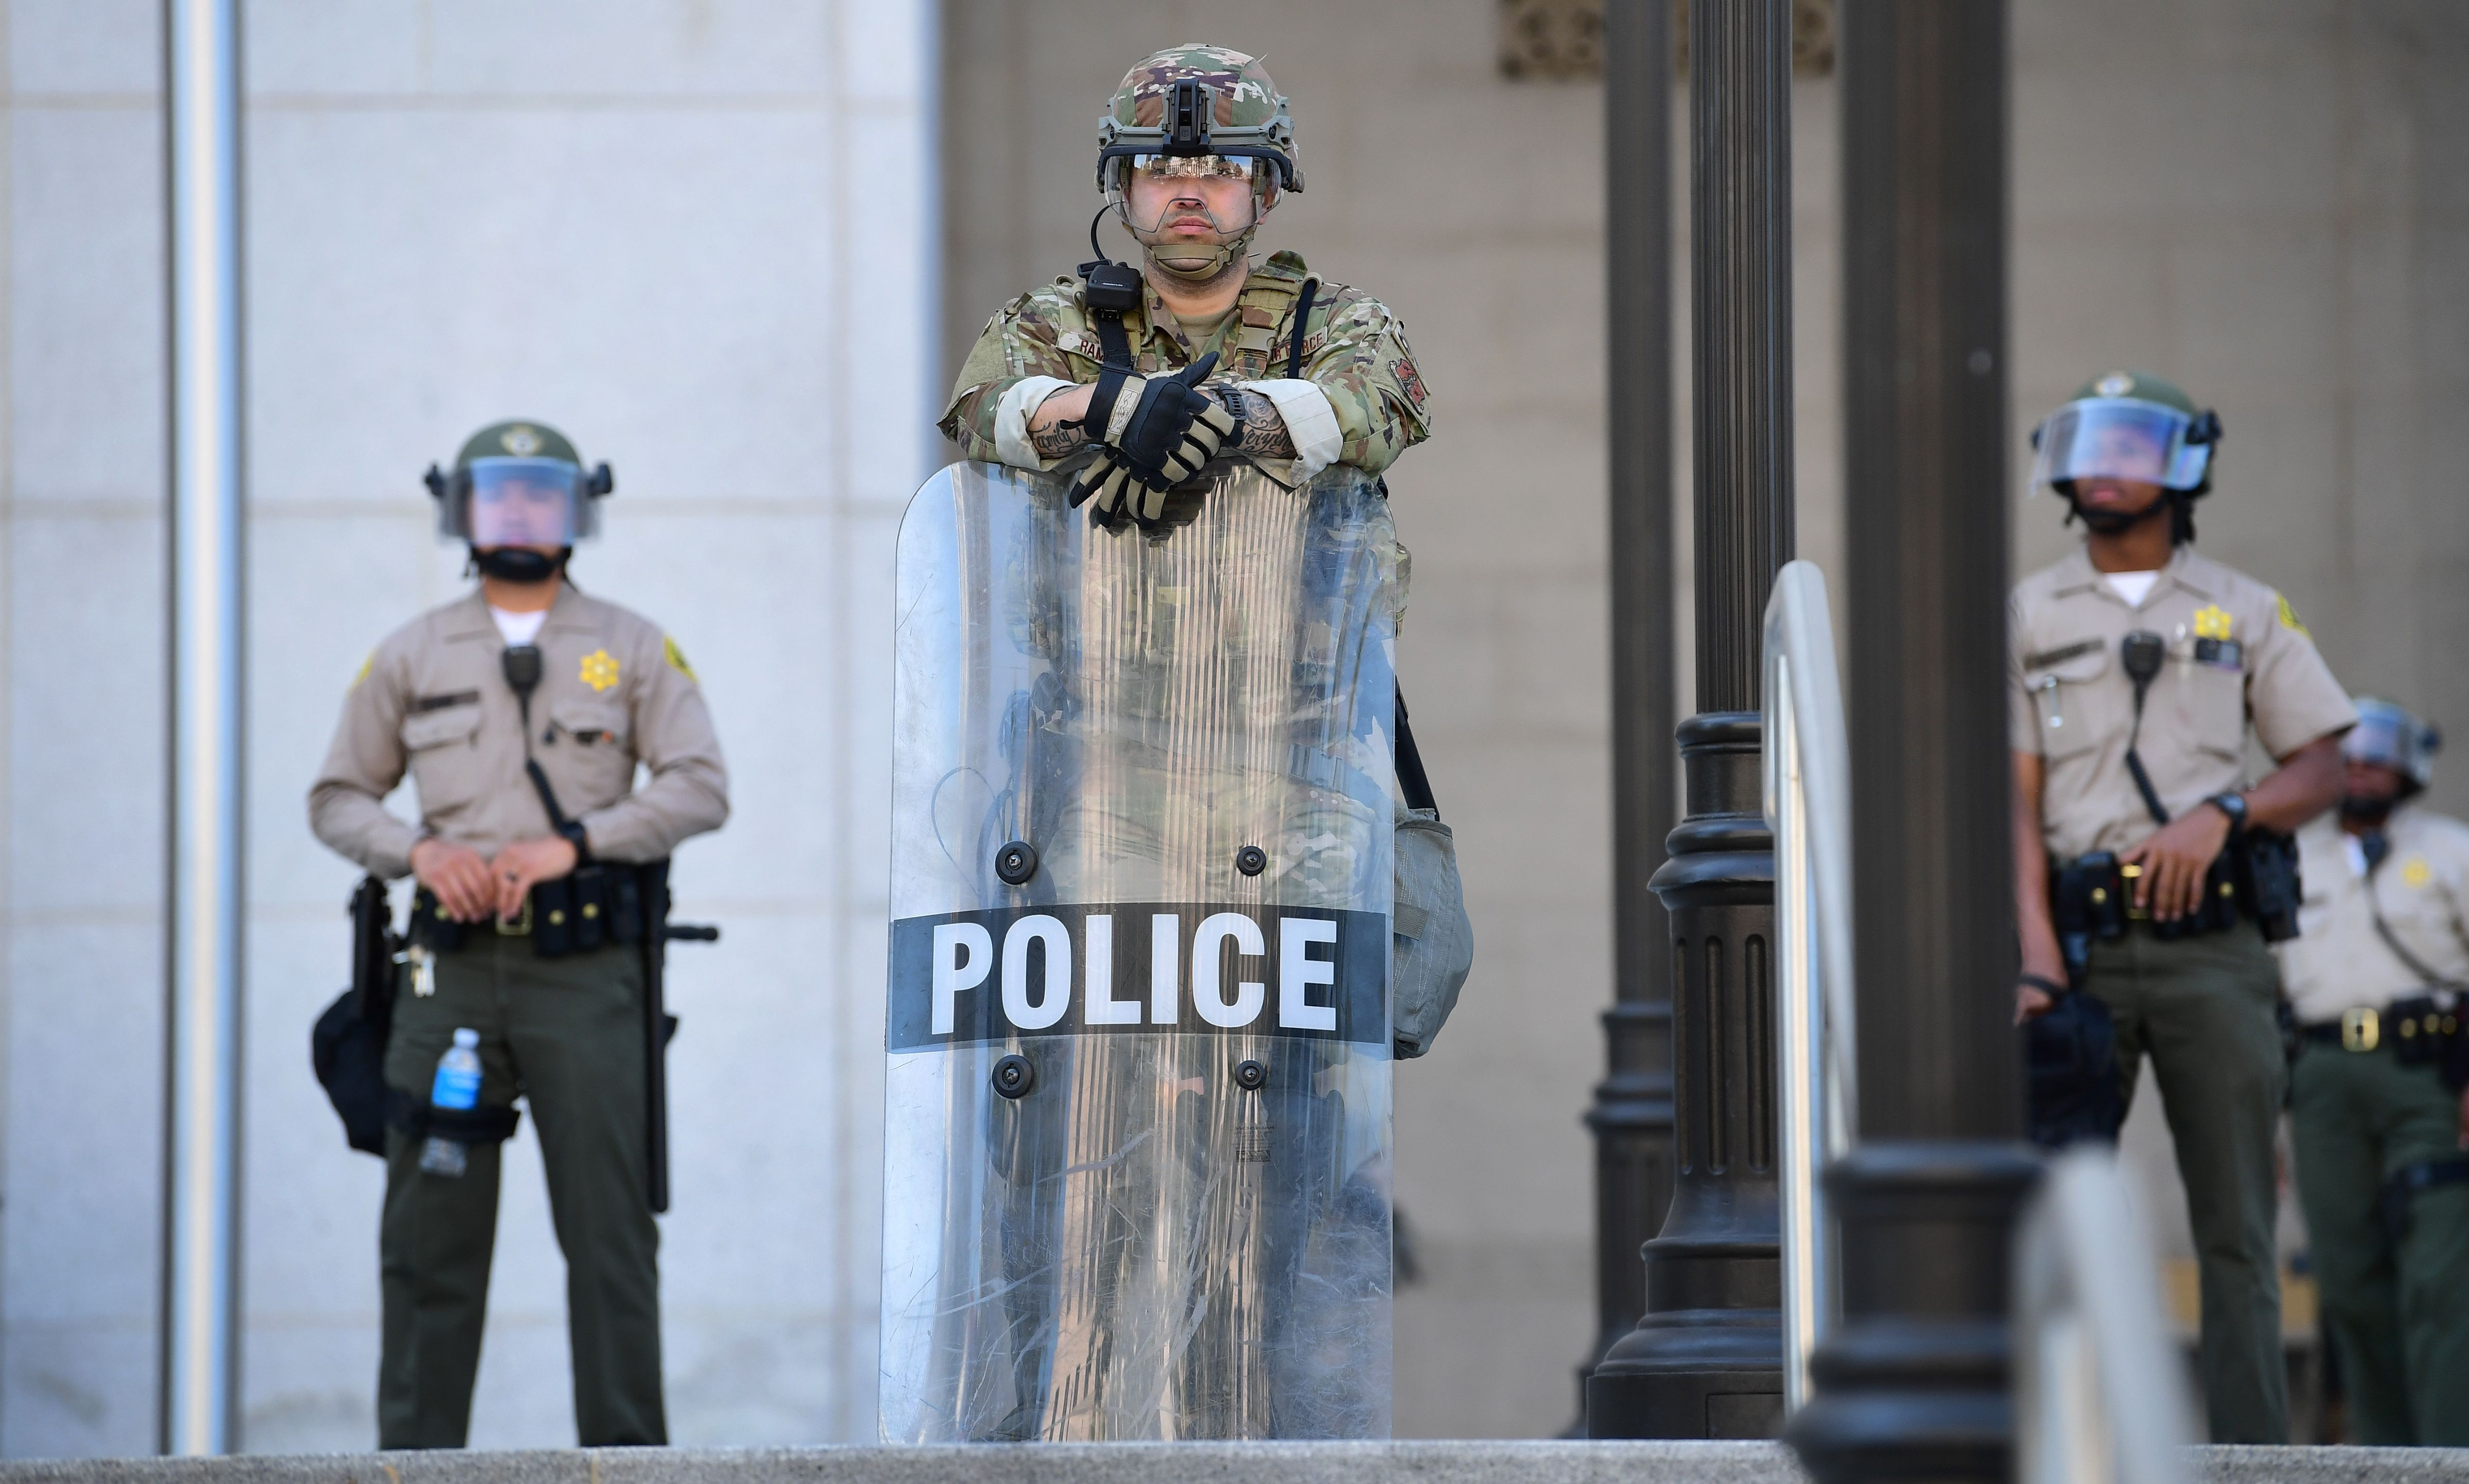 Law enforcement personnel in riot gear face protesters in Los Angeles, California on June 3, 2020 where people gathered to protest the death of George Floyd under police custody. - Derek Chauvin, the white Minneapolis police officer who kneeled on the neck of George Floyd, a black man who later died, will now be charged with second-degree murder, and his three colleagues will also face charges, court documents revealed on June 3. The May 25 death of George Floyd -- who had been accused of trying to buy cigarettes with a counterfeit bill -- has ignited protests across the United States over systemic racism and police brutality. (Photo by FREDERIC J. BROWN/AFP via Getty Images)